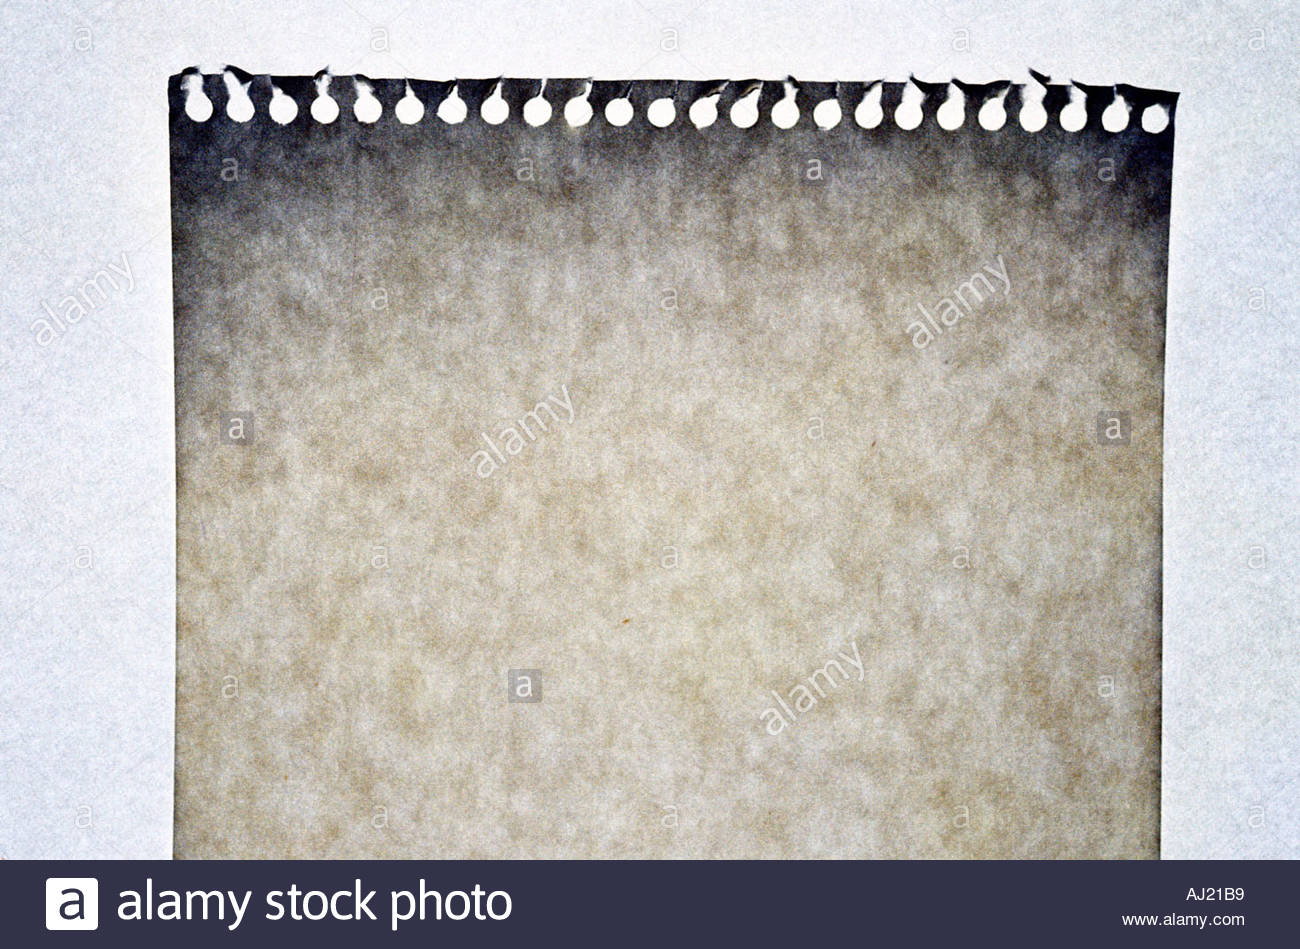 torn page from a notepad - Stock Image